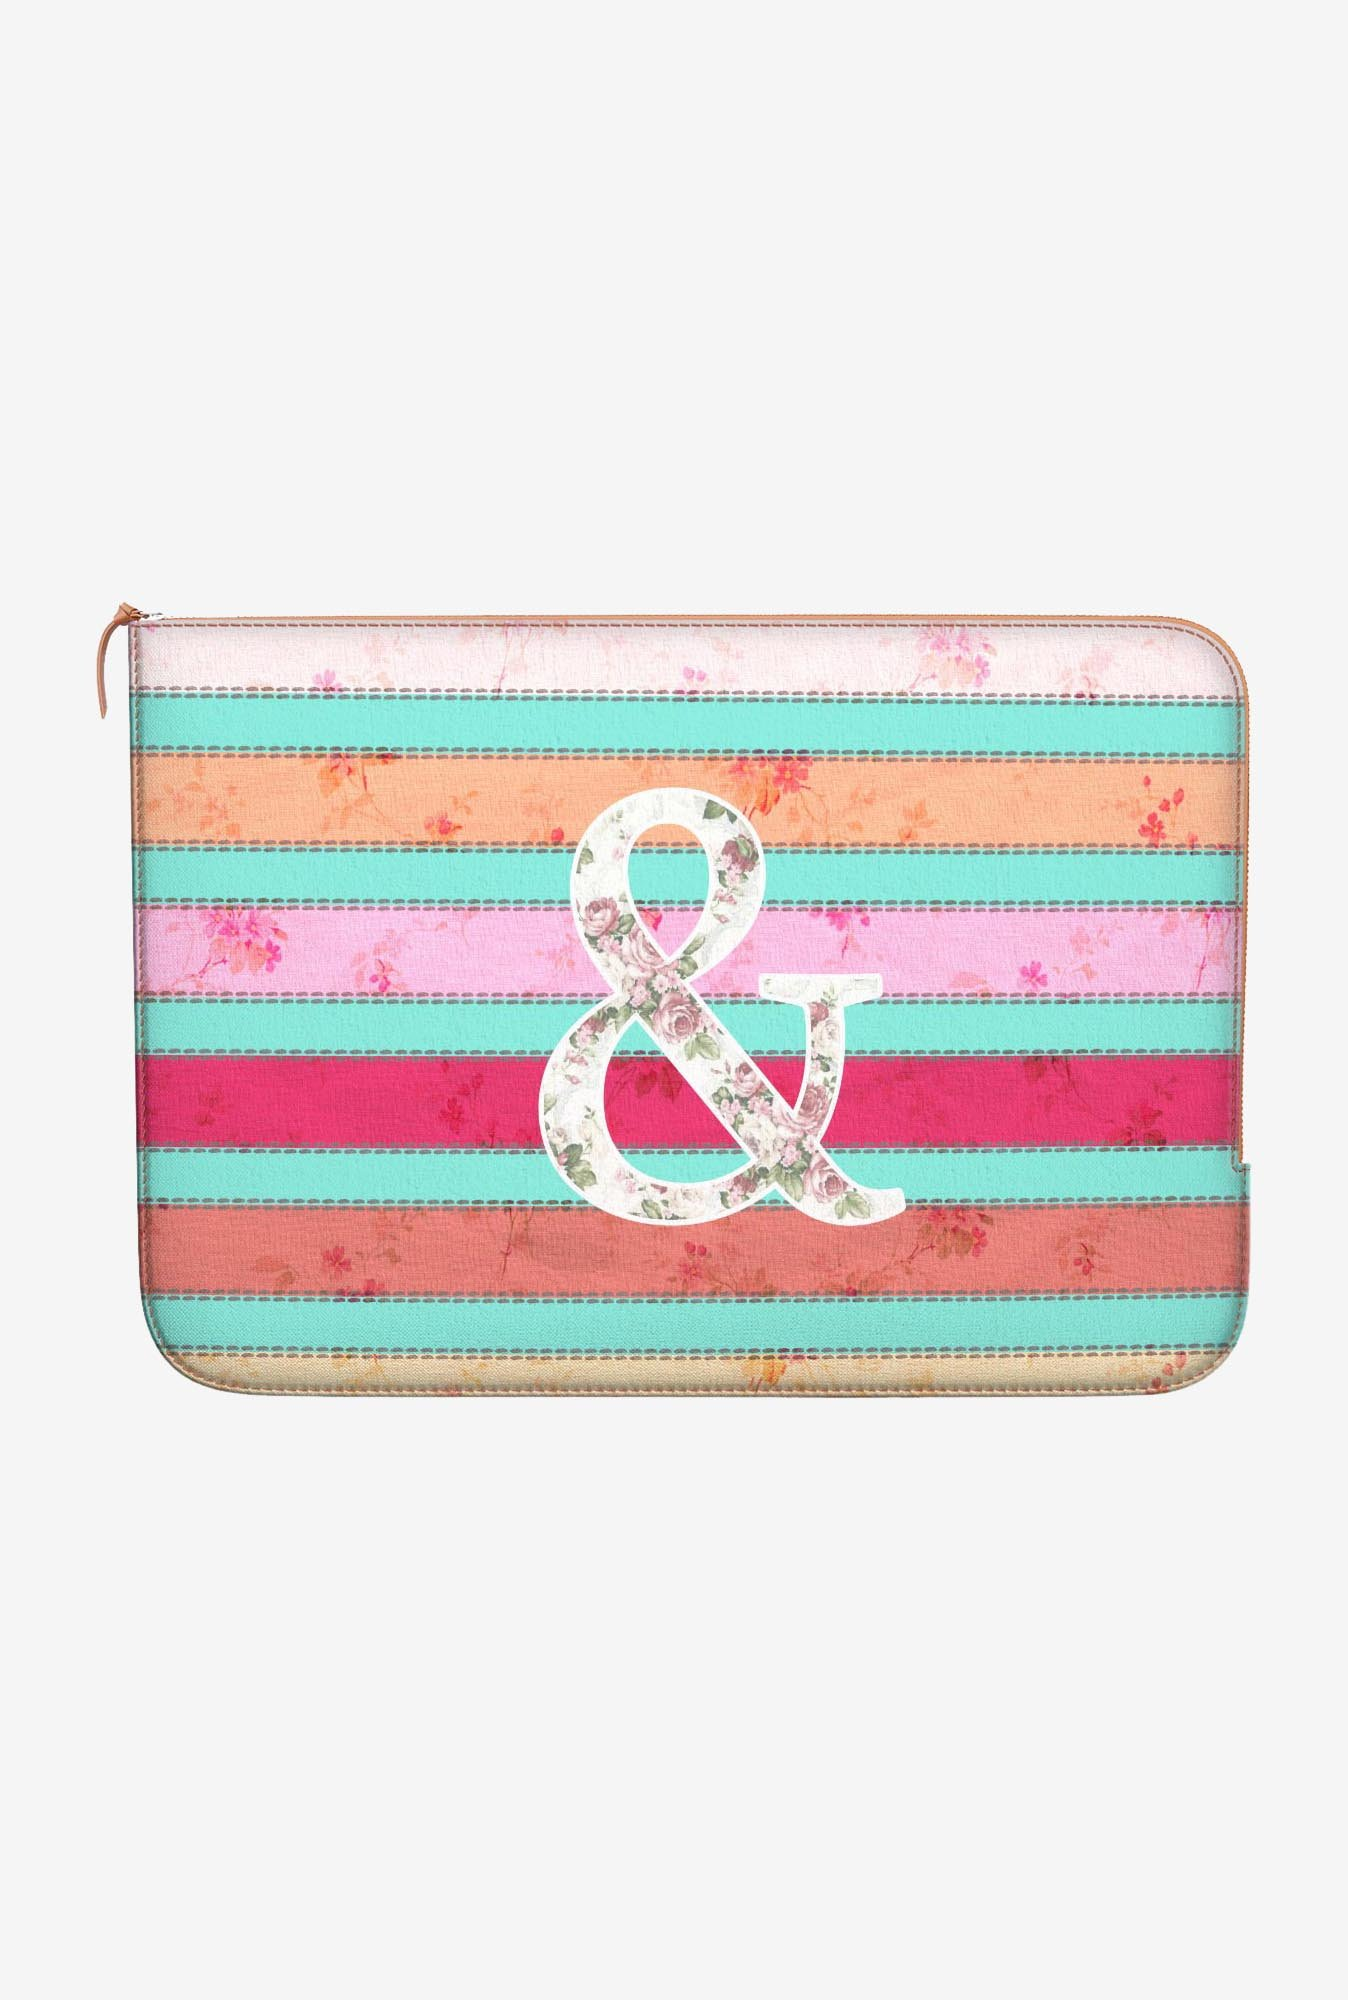 DailyObjects Ampersand MacBook Pro 13 Zippered Sleeve